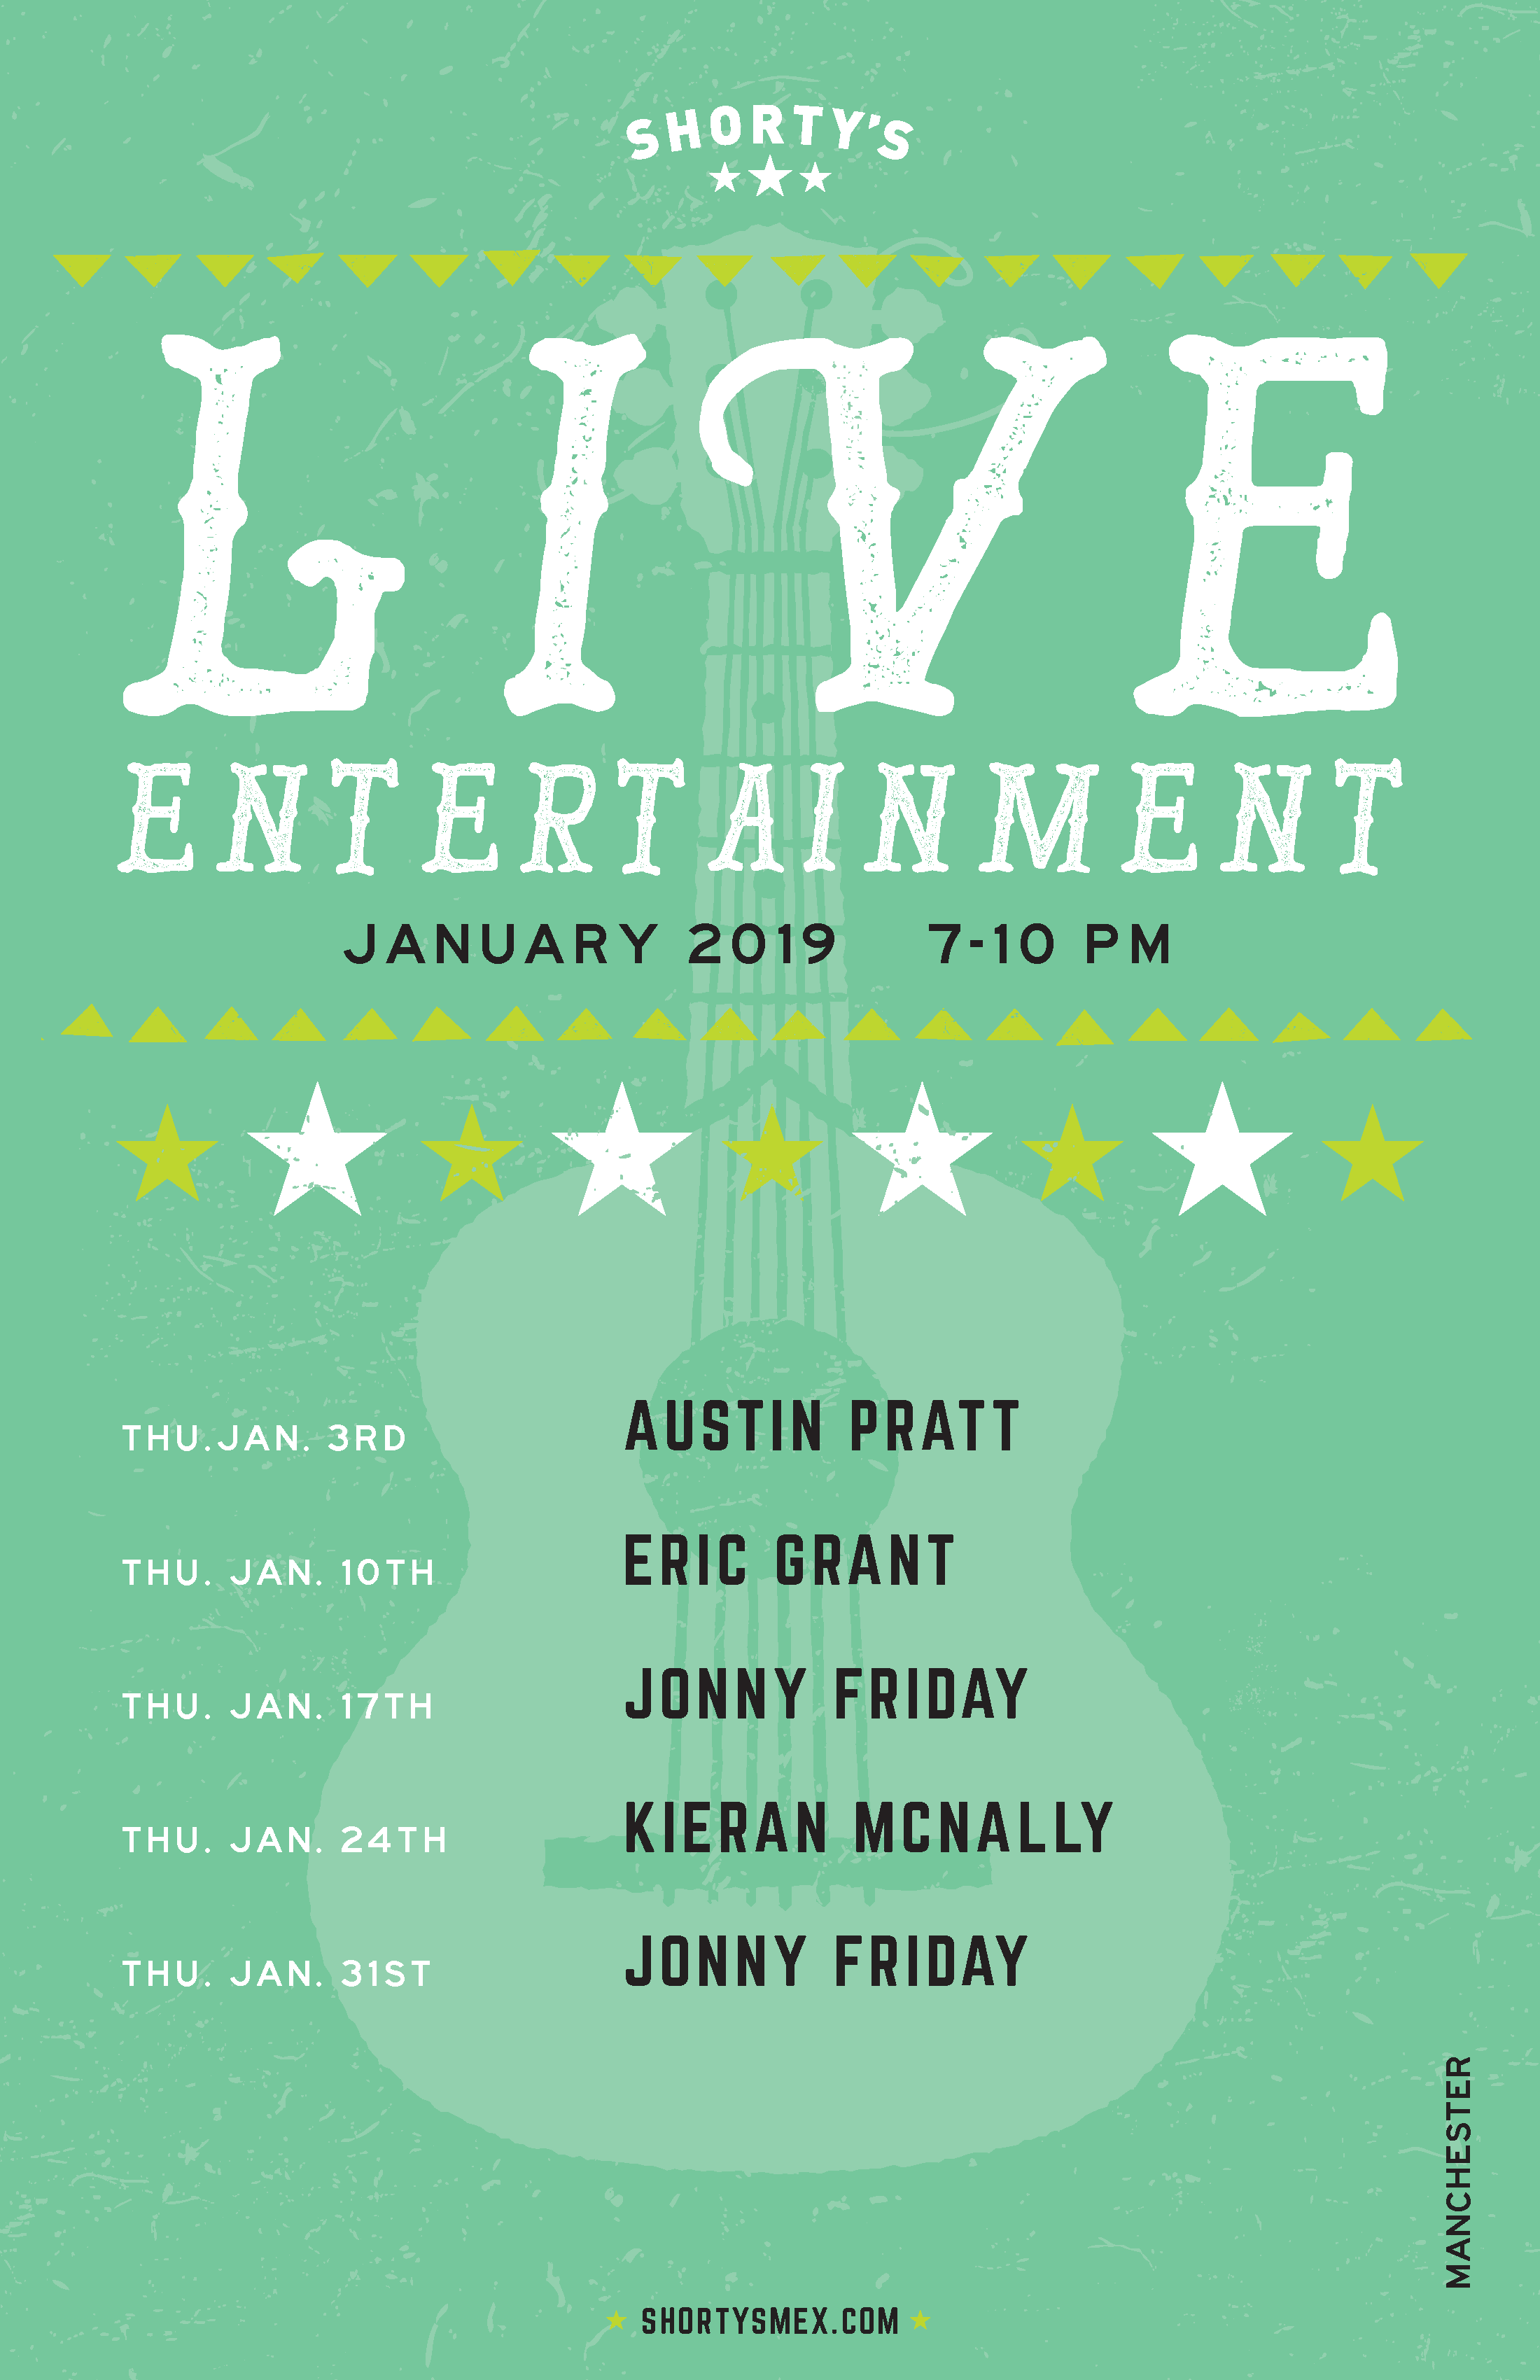 Shorty's Live Entertainment Calendar - January in Manchester